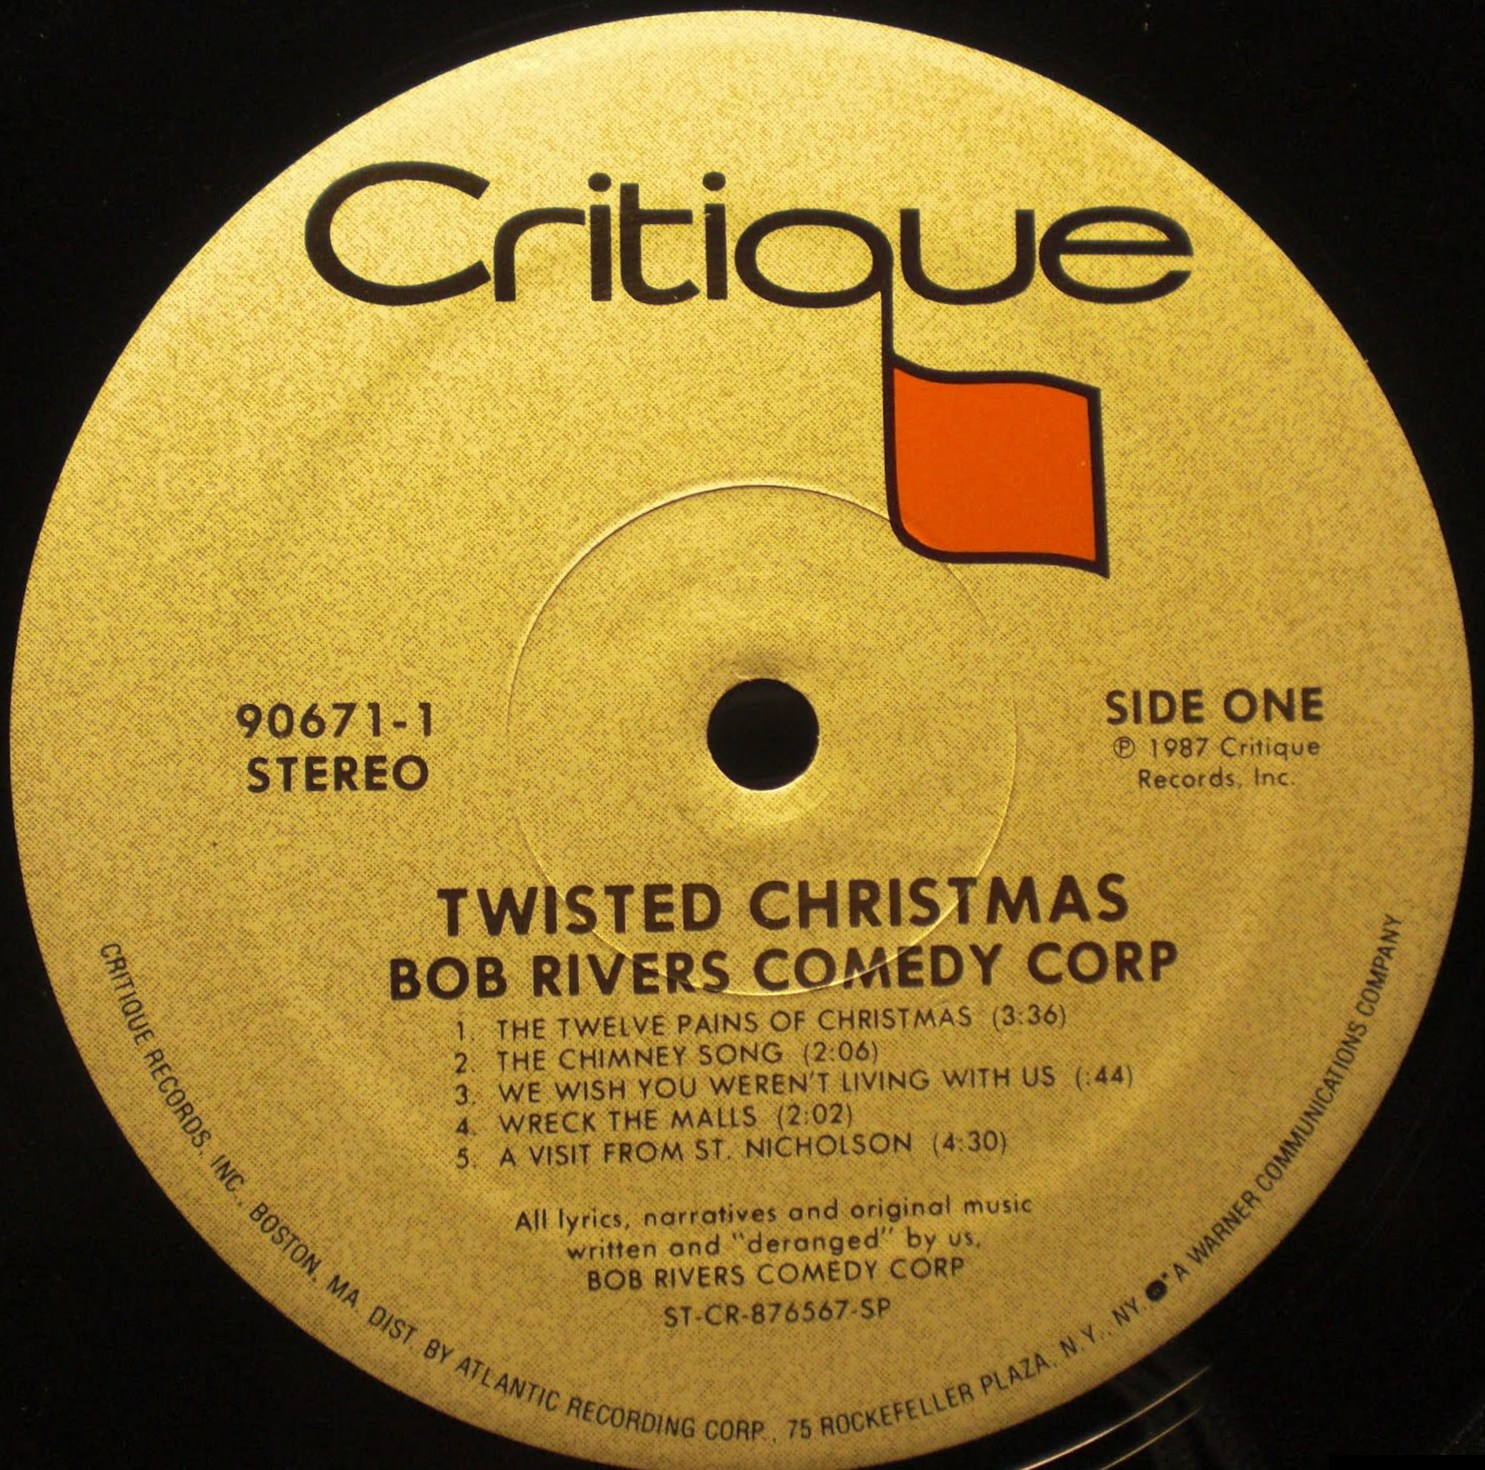 recordo obscura: the soundtrack of nobody's life: TWISTED CHRISTMAS